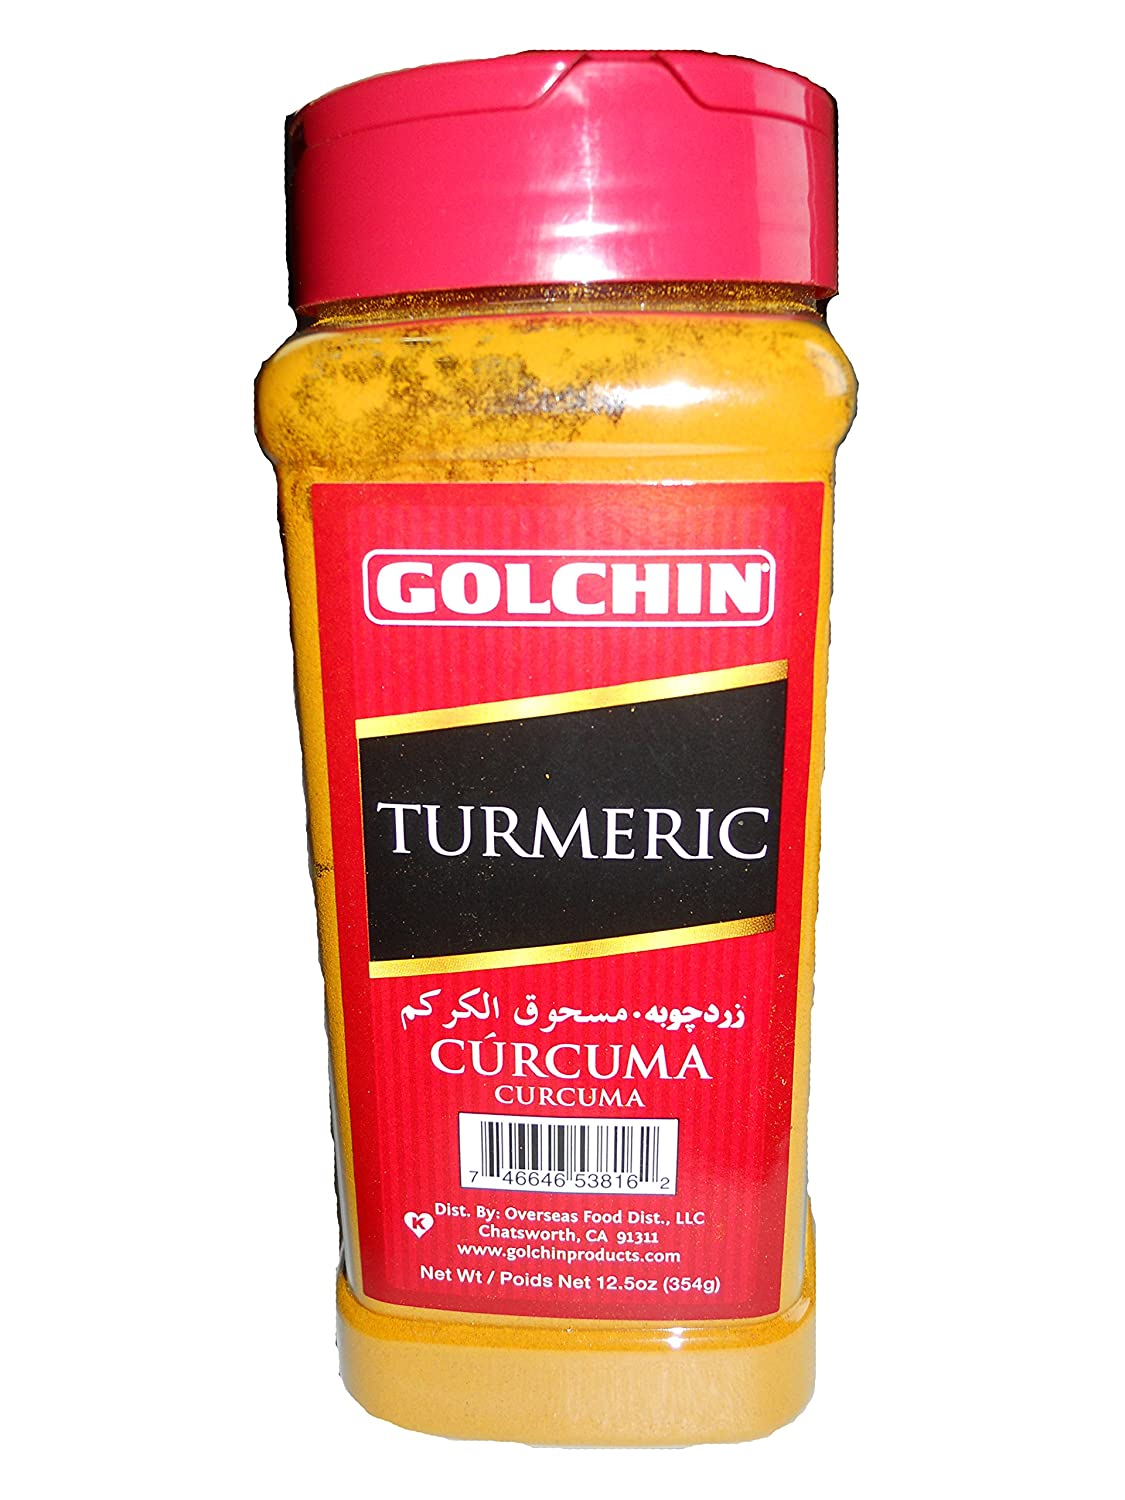 Golchin Turmeric Pack 3 Columbus Mall low-pricing of